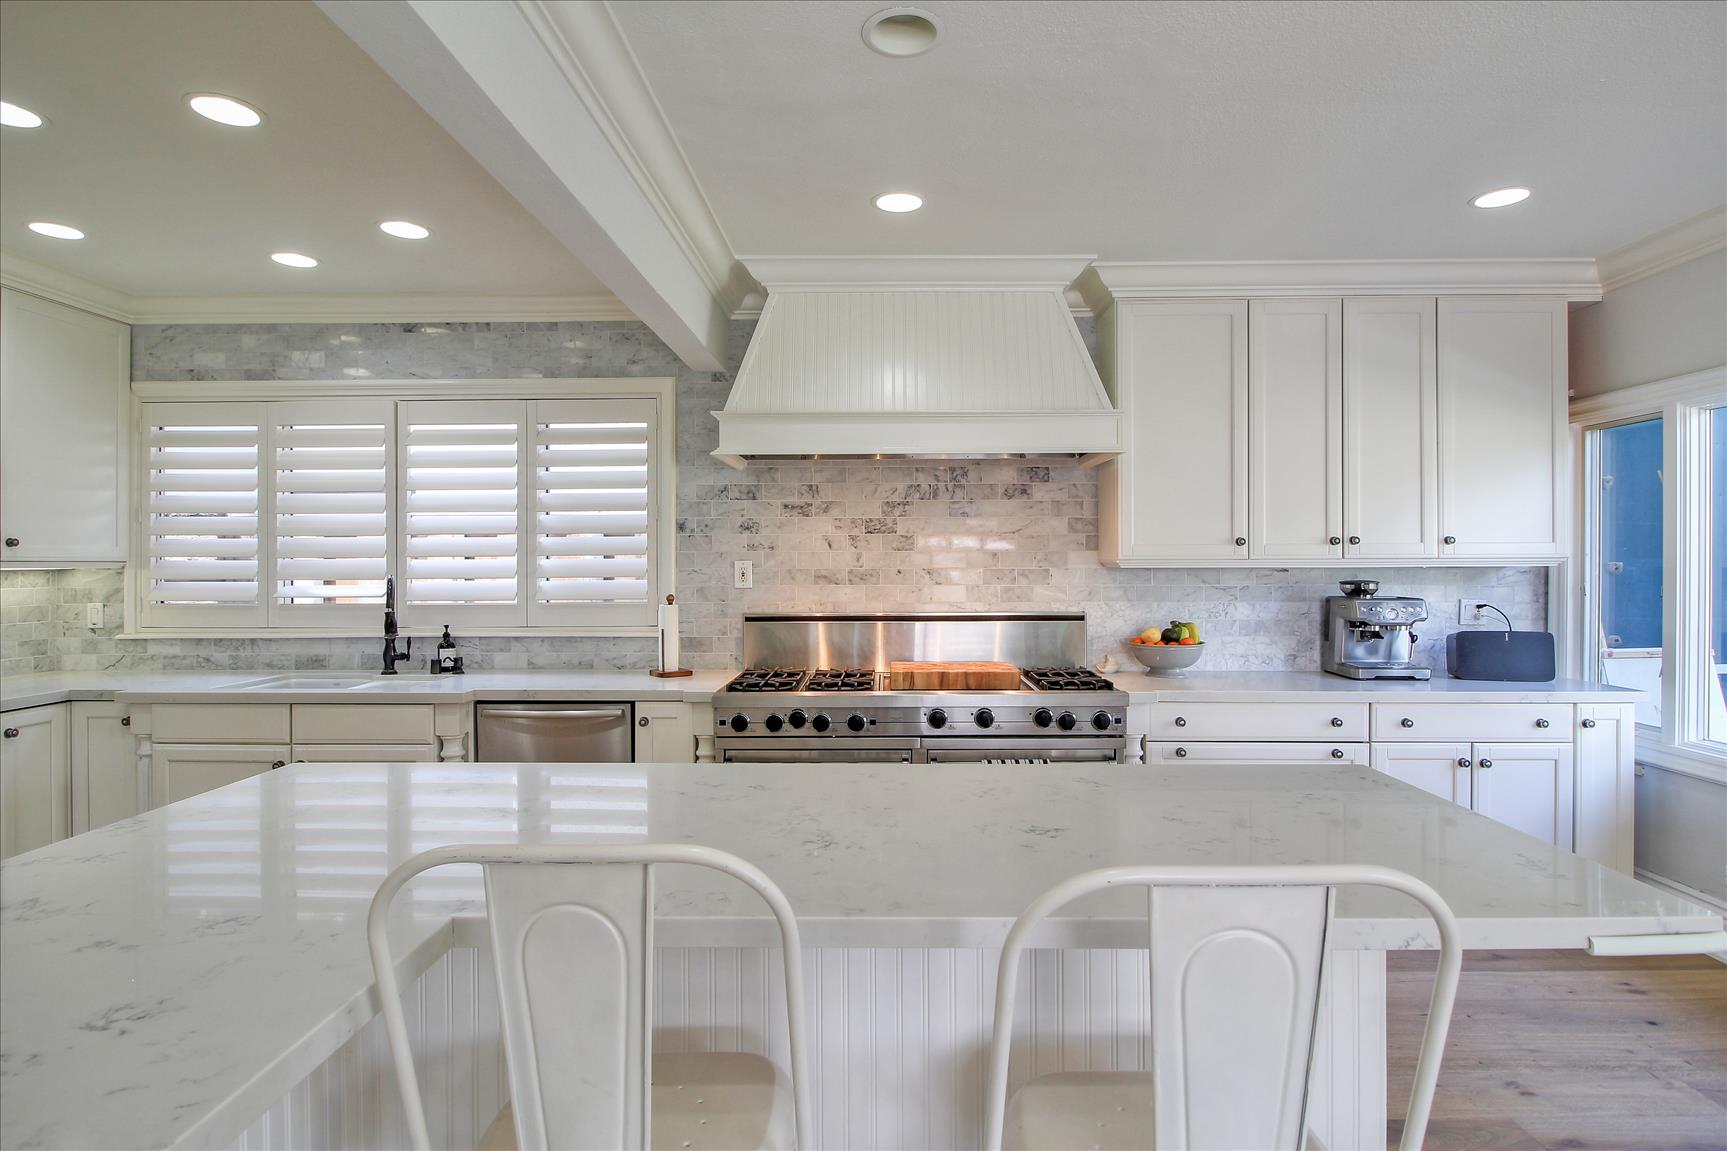 1836 Port Barmouth Pl, Newport Beach, CA  9266017.jpg